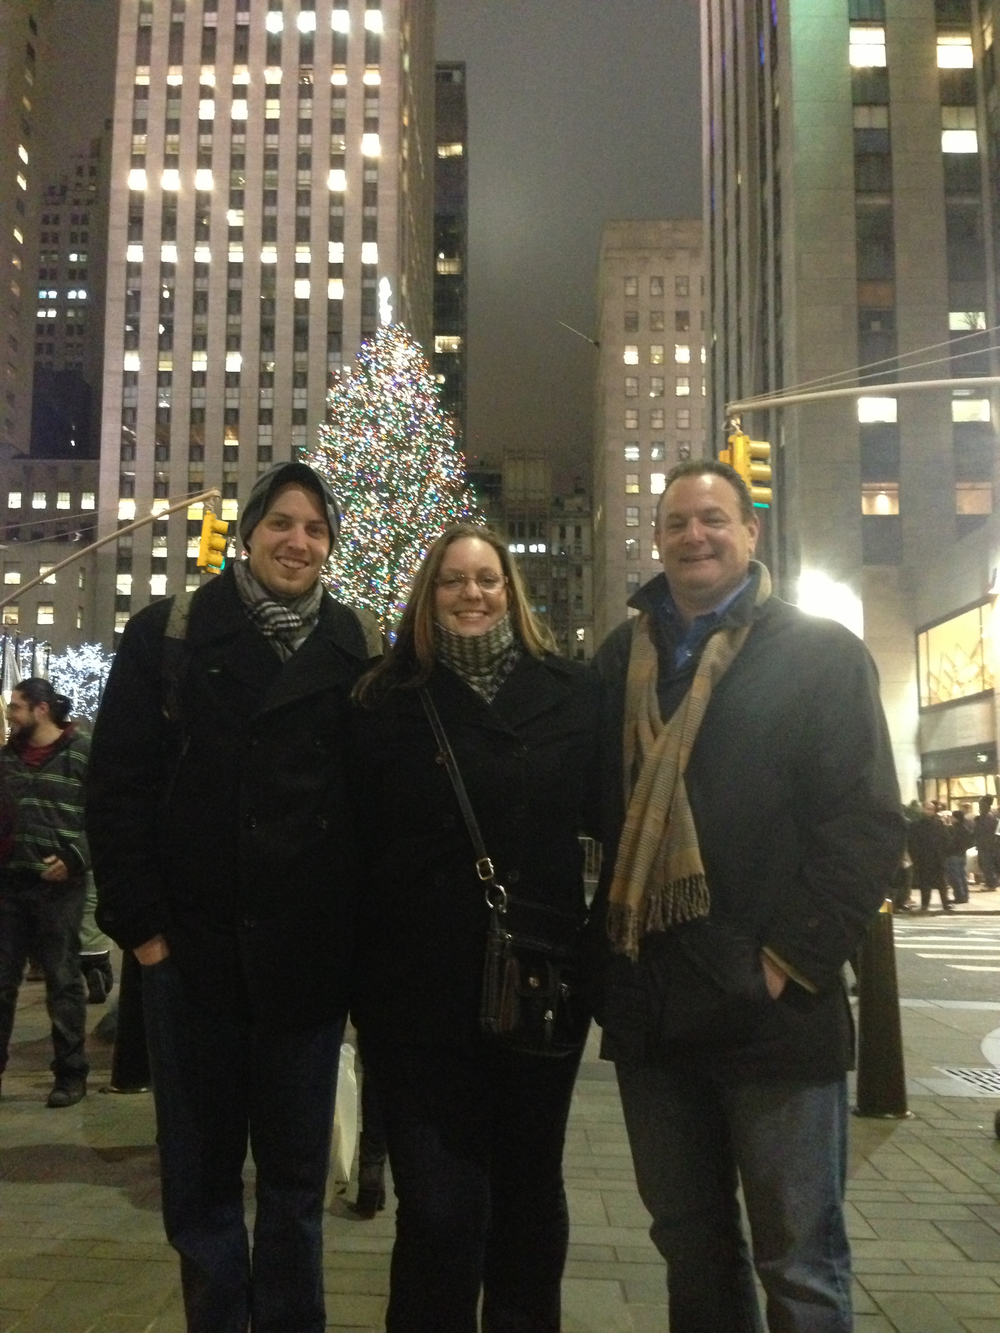 Dr. Quade, pictured with her brother and father in Rockefeller Center.